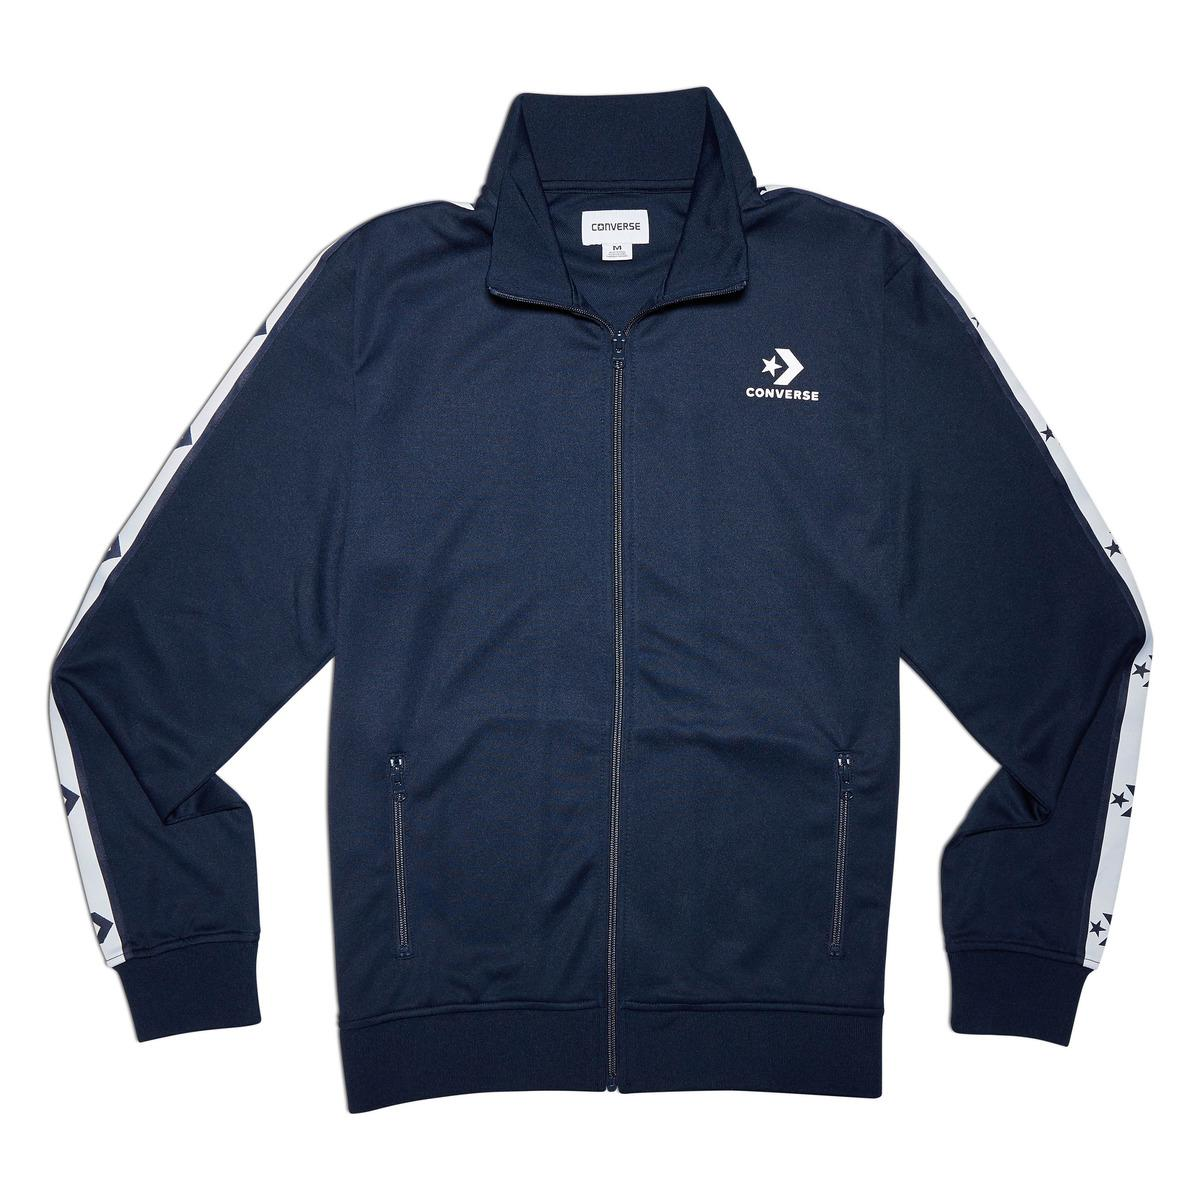 Converse Star Chevron Track Jacket in Blue for Men - Lyst 2f7016697